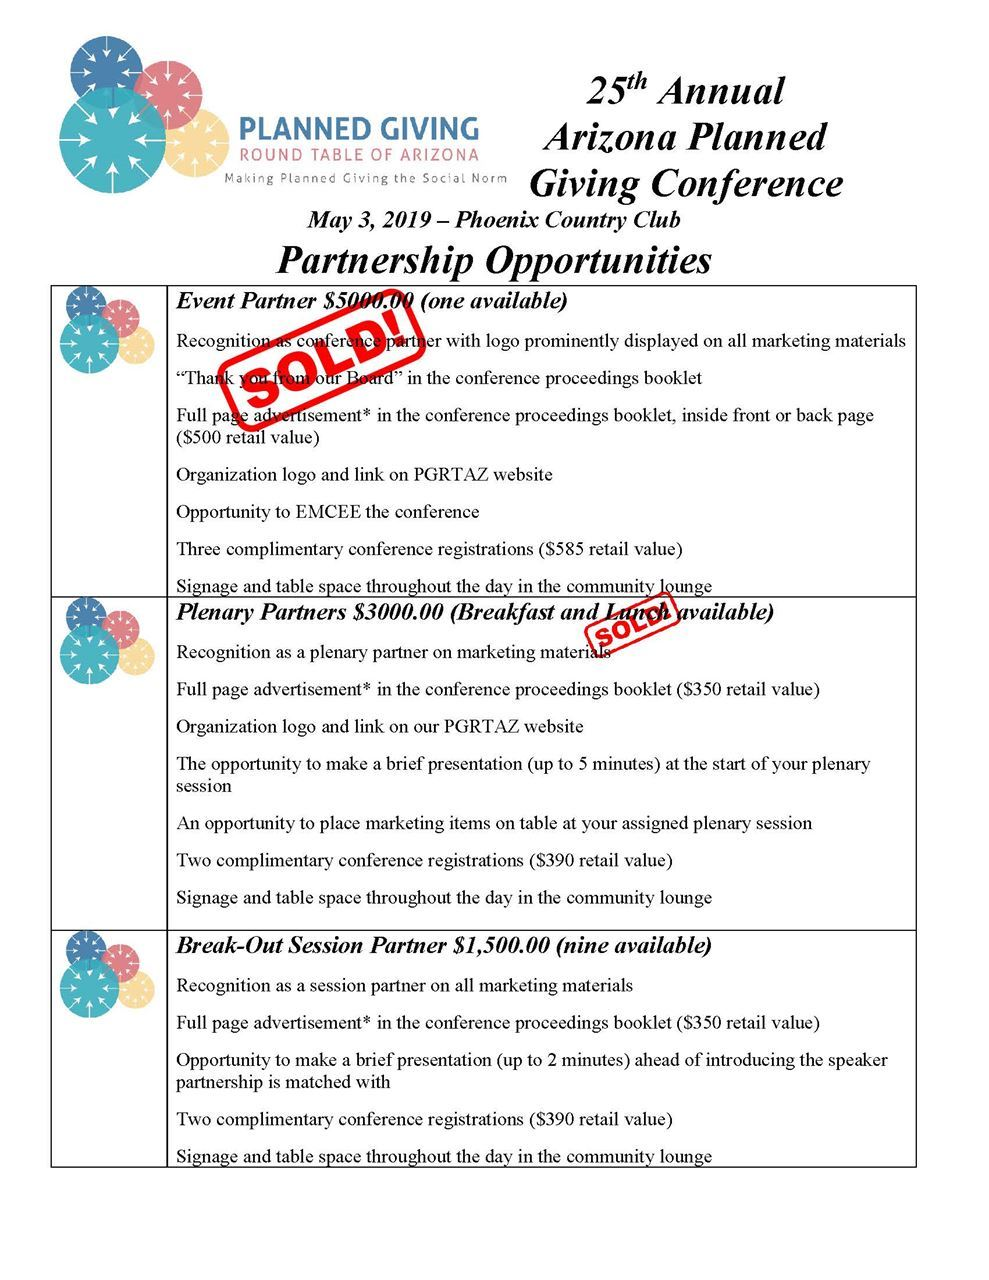 Planned Giving Round Table of Arizona - 2019 Conference